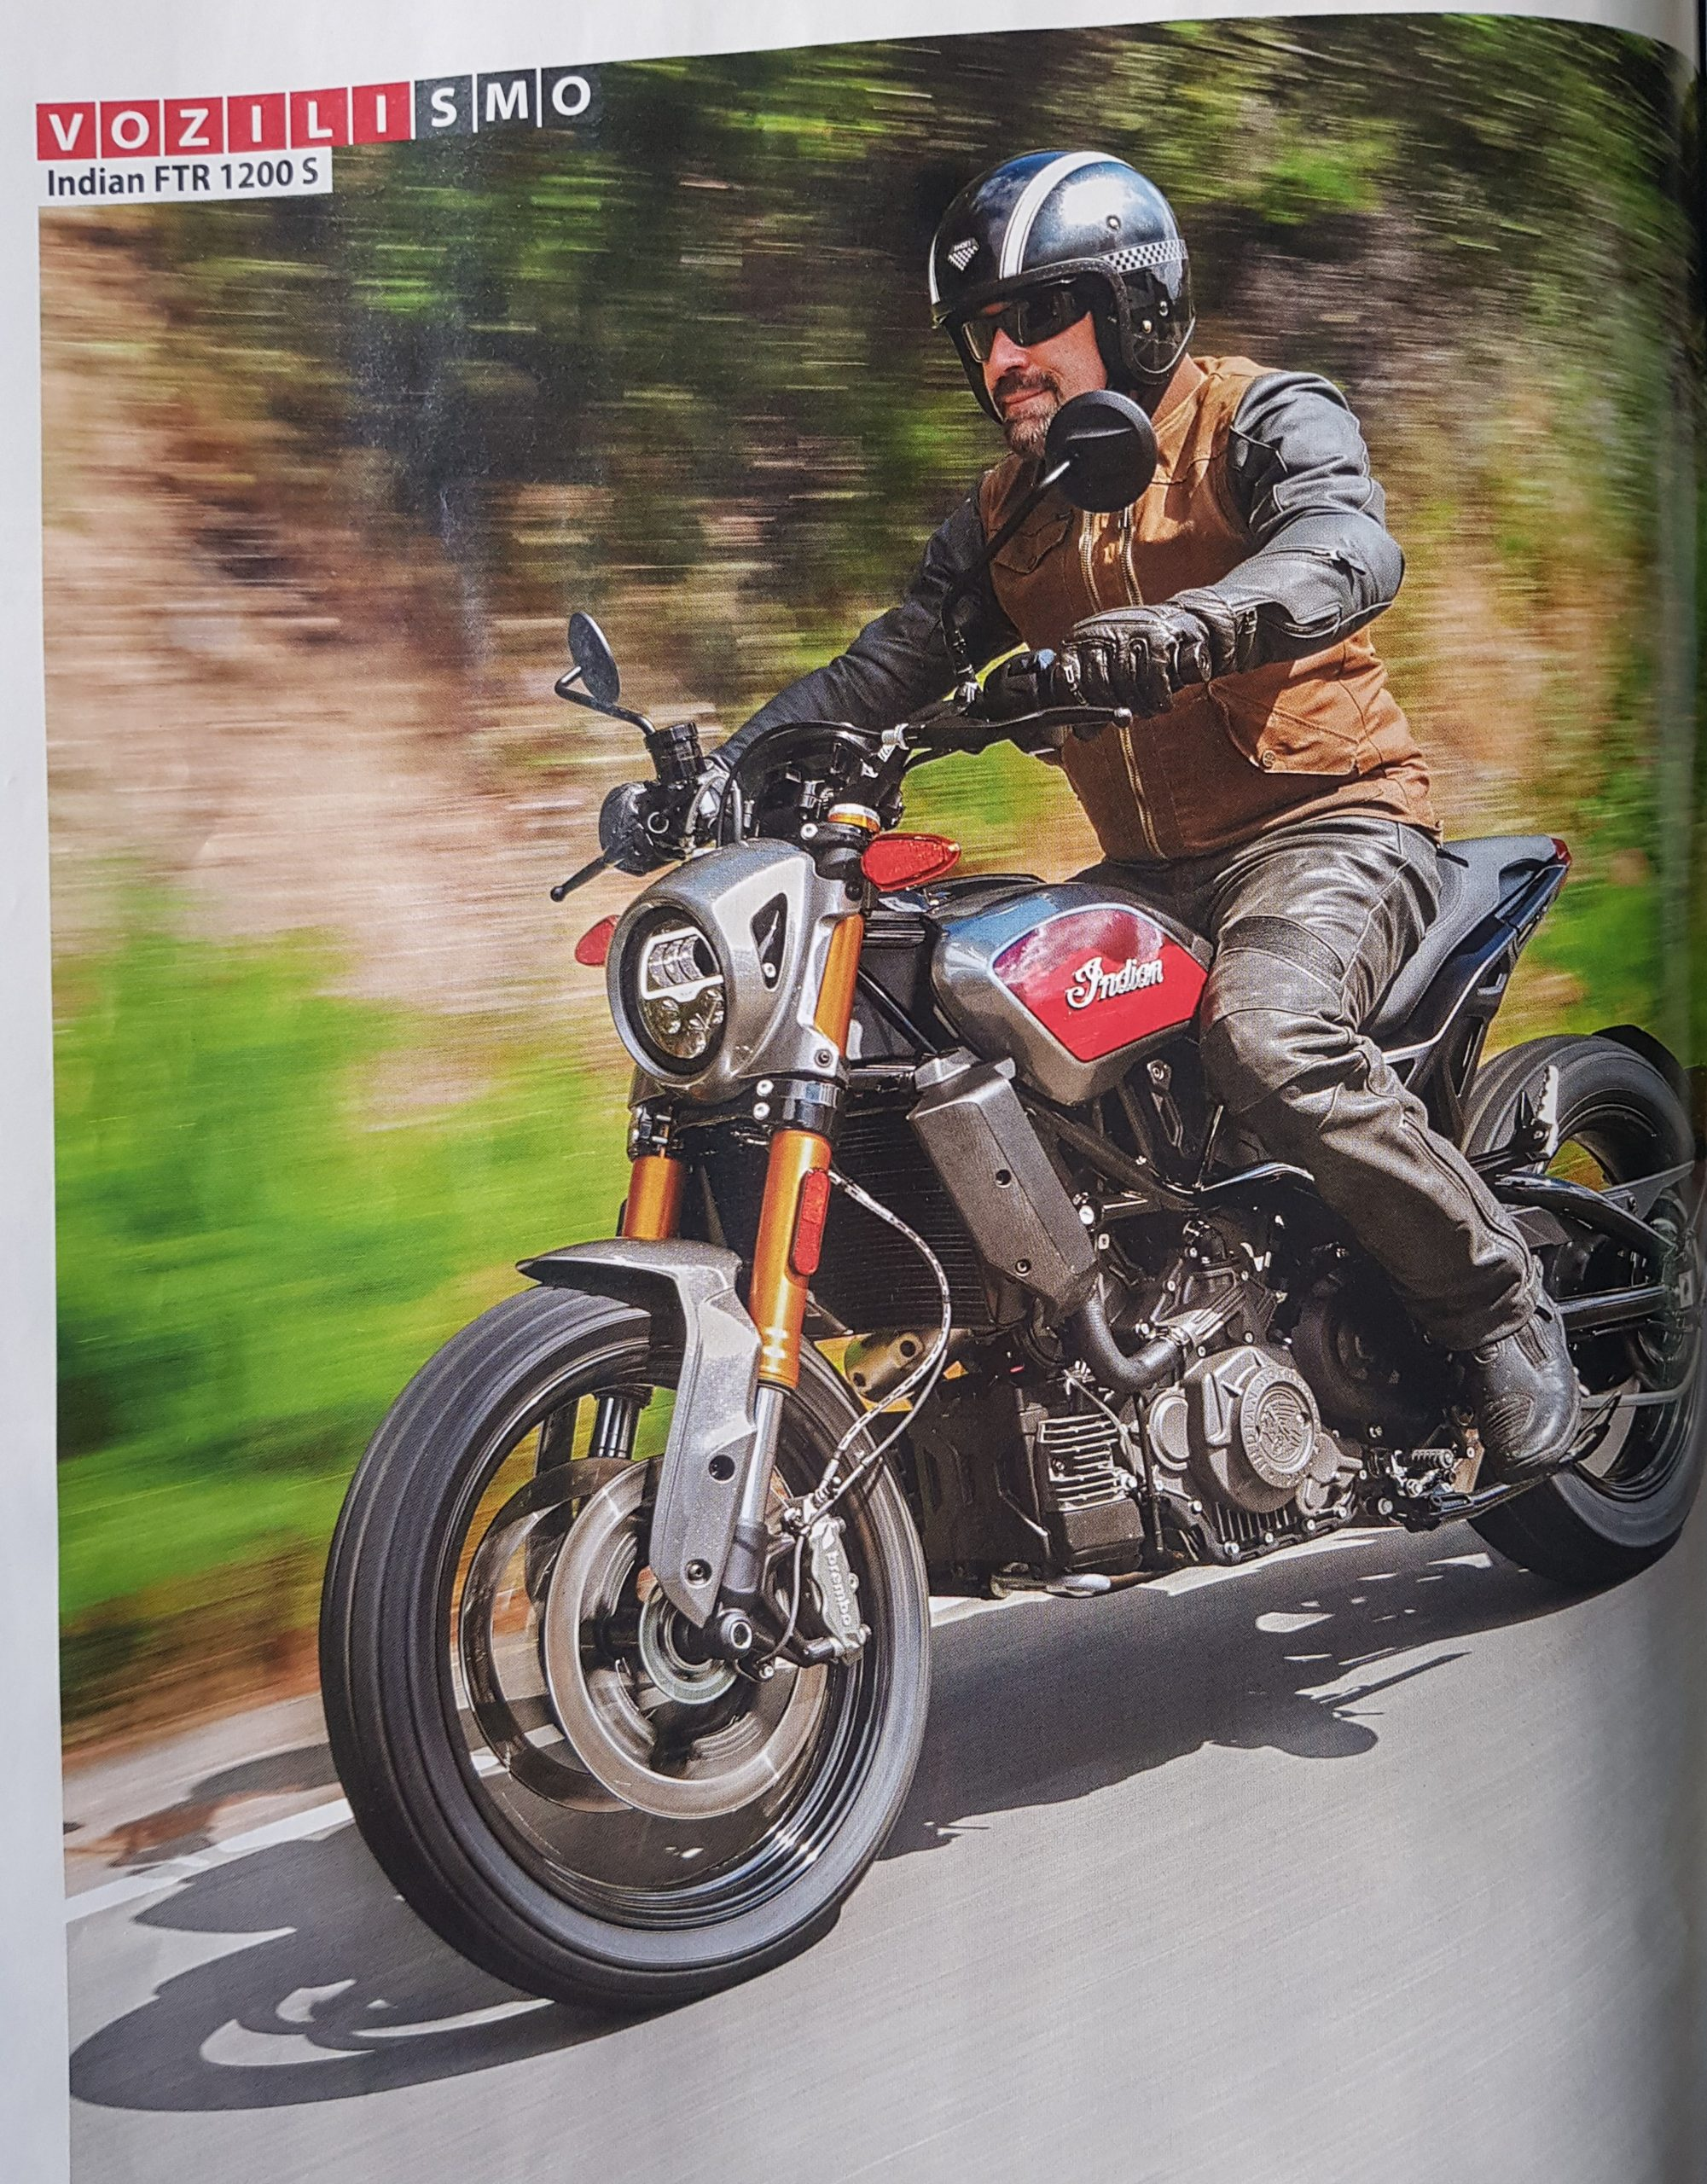 Motorevija: Indian FTR 1200 S